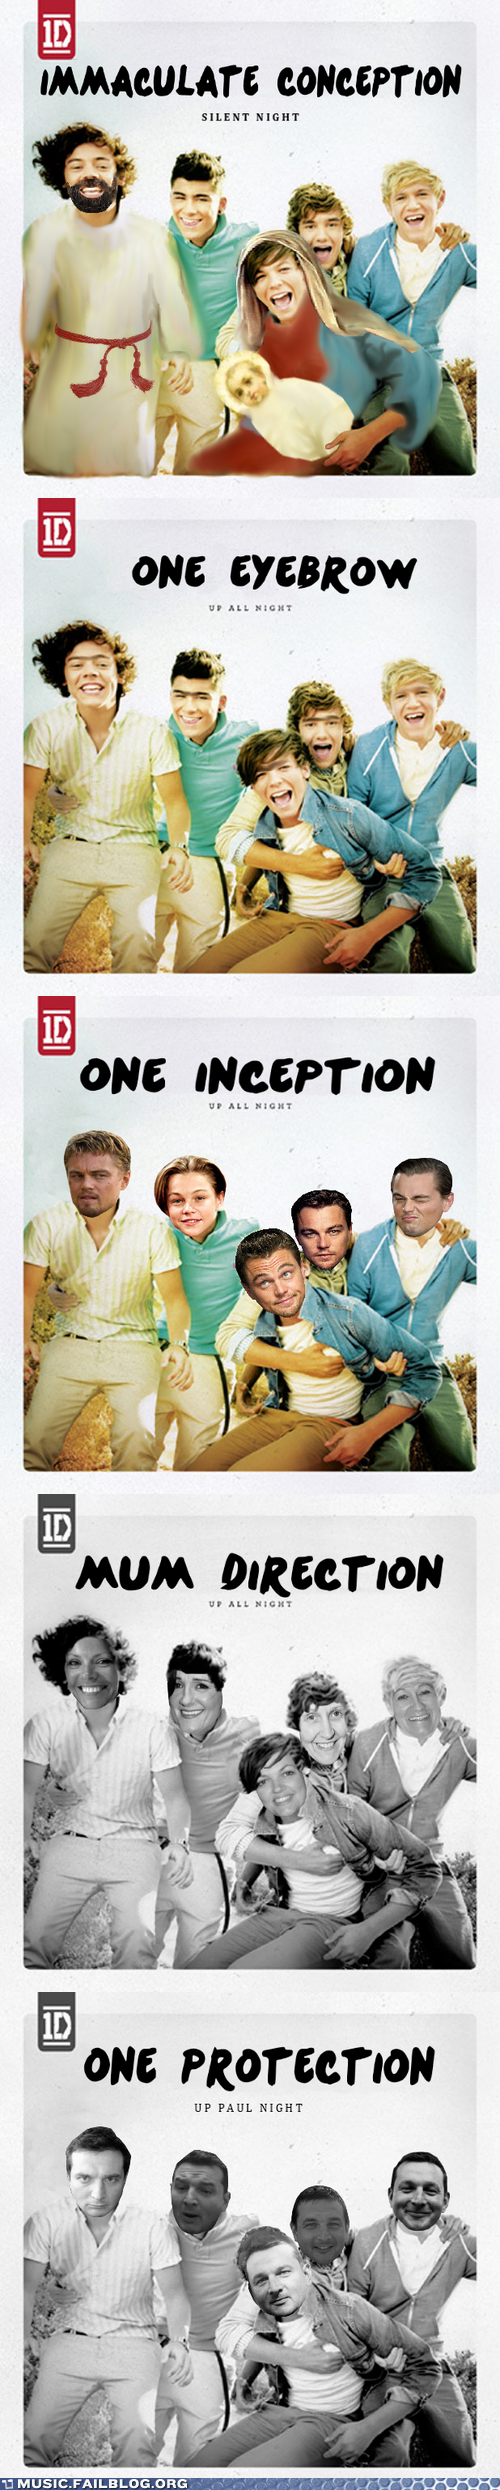 Music FAILS: Five Shops, One Direction